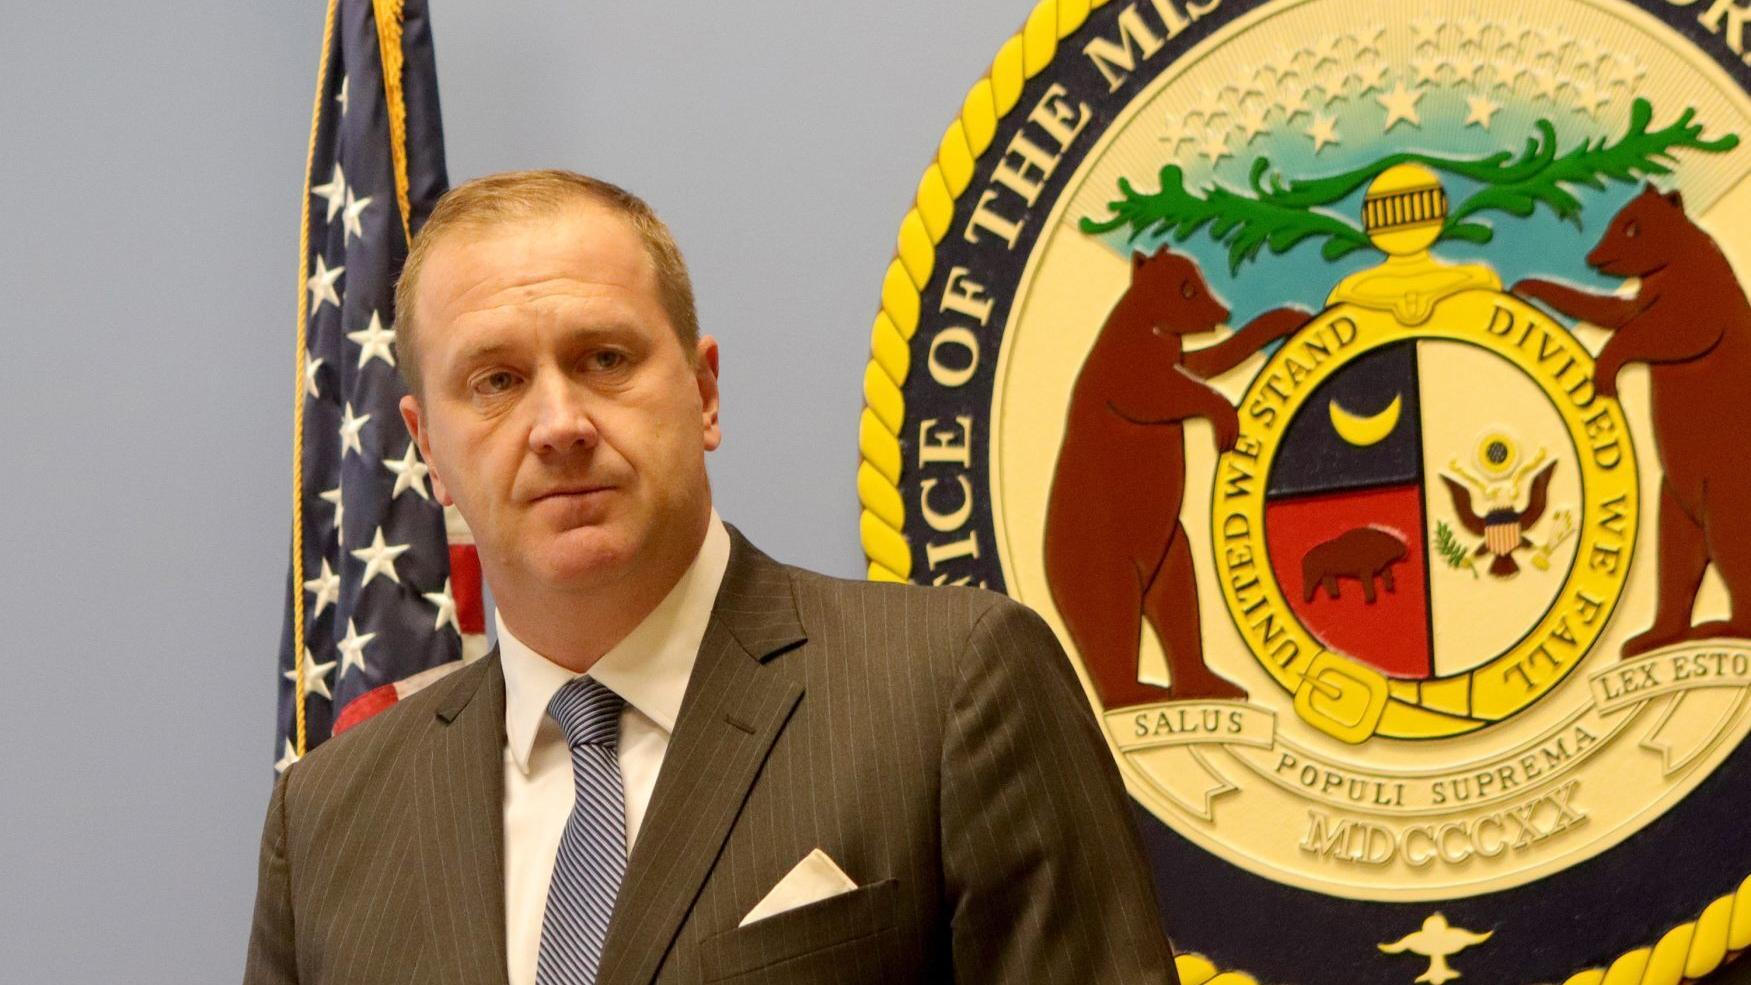 Schmitt had 'no knowledge' of AG group's robocall before Capitol siege, spokesman says